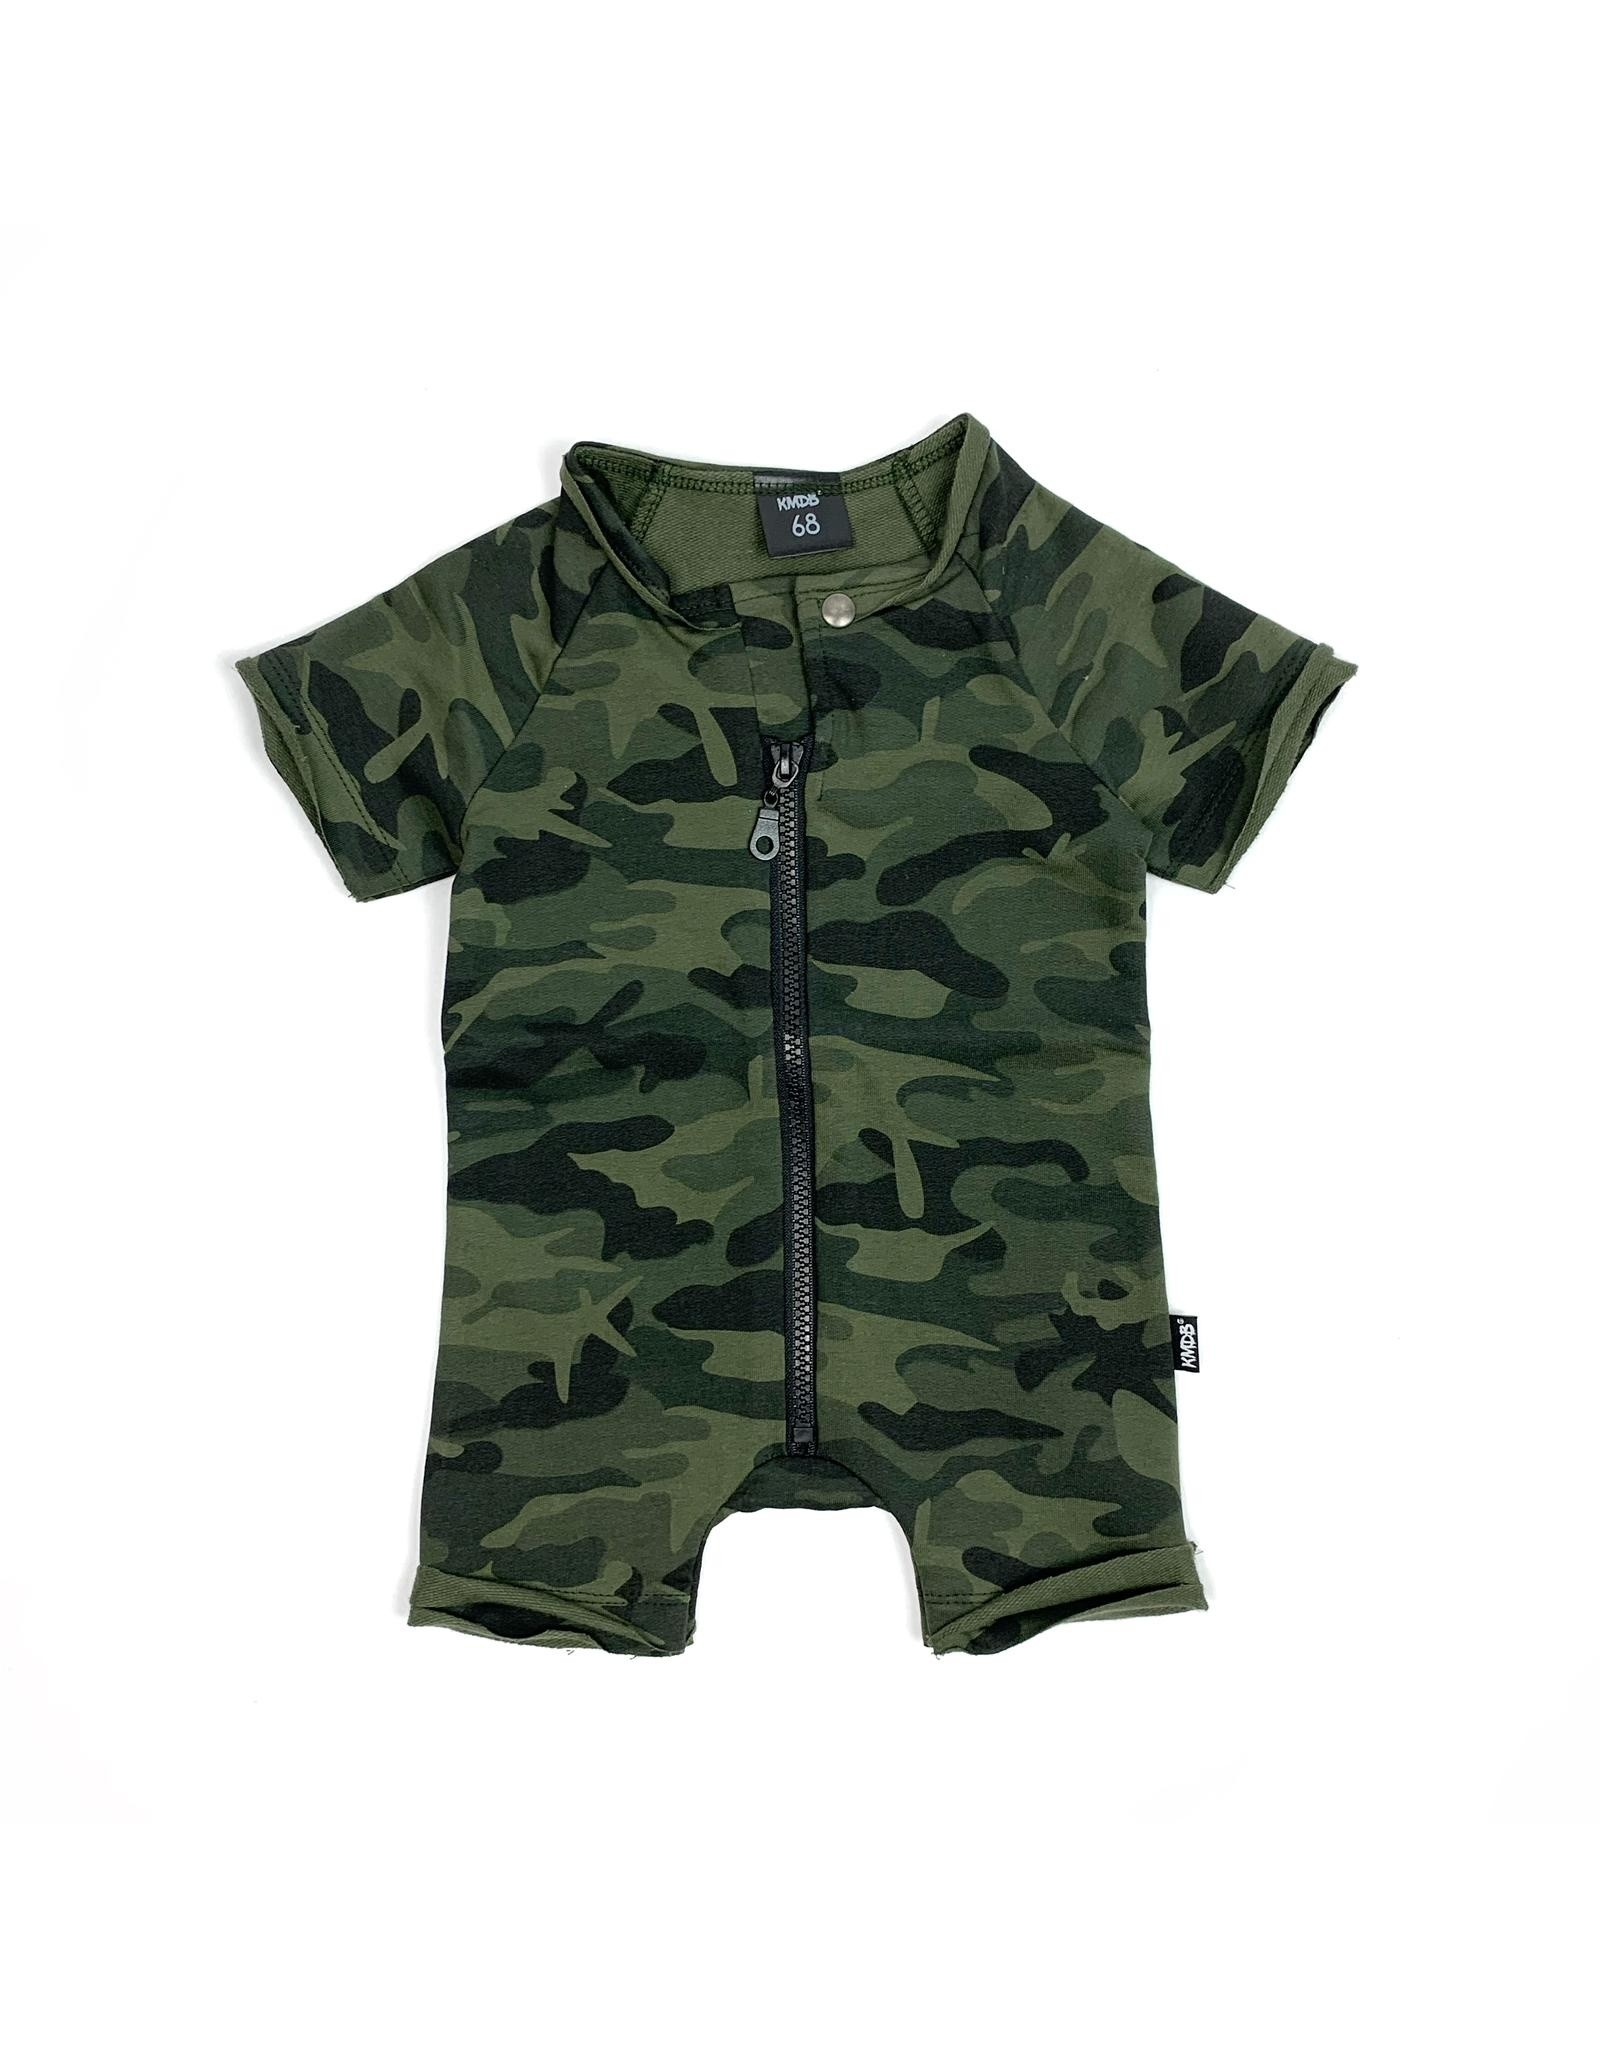 KMDB KMDB Playsuit Summer Camo Green